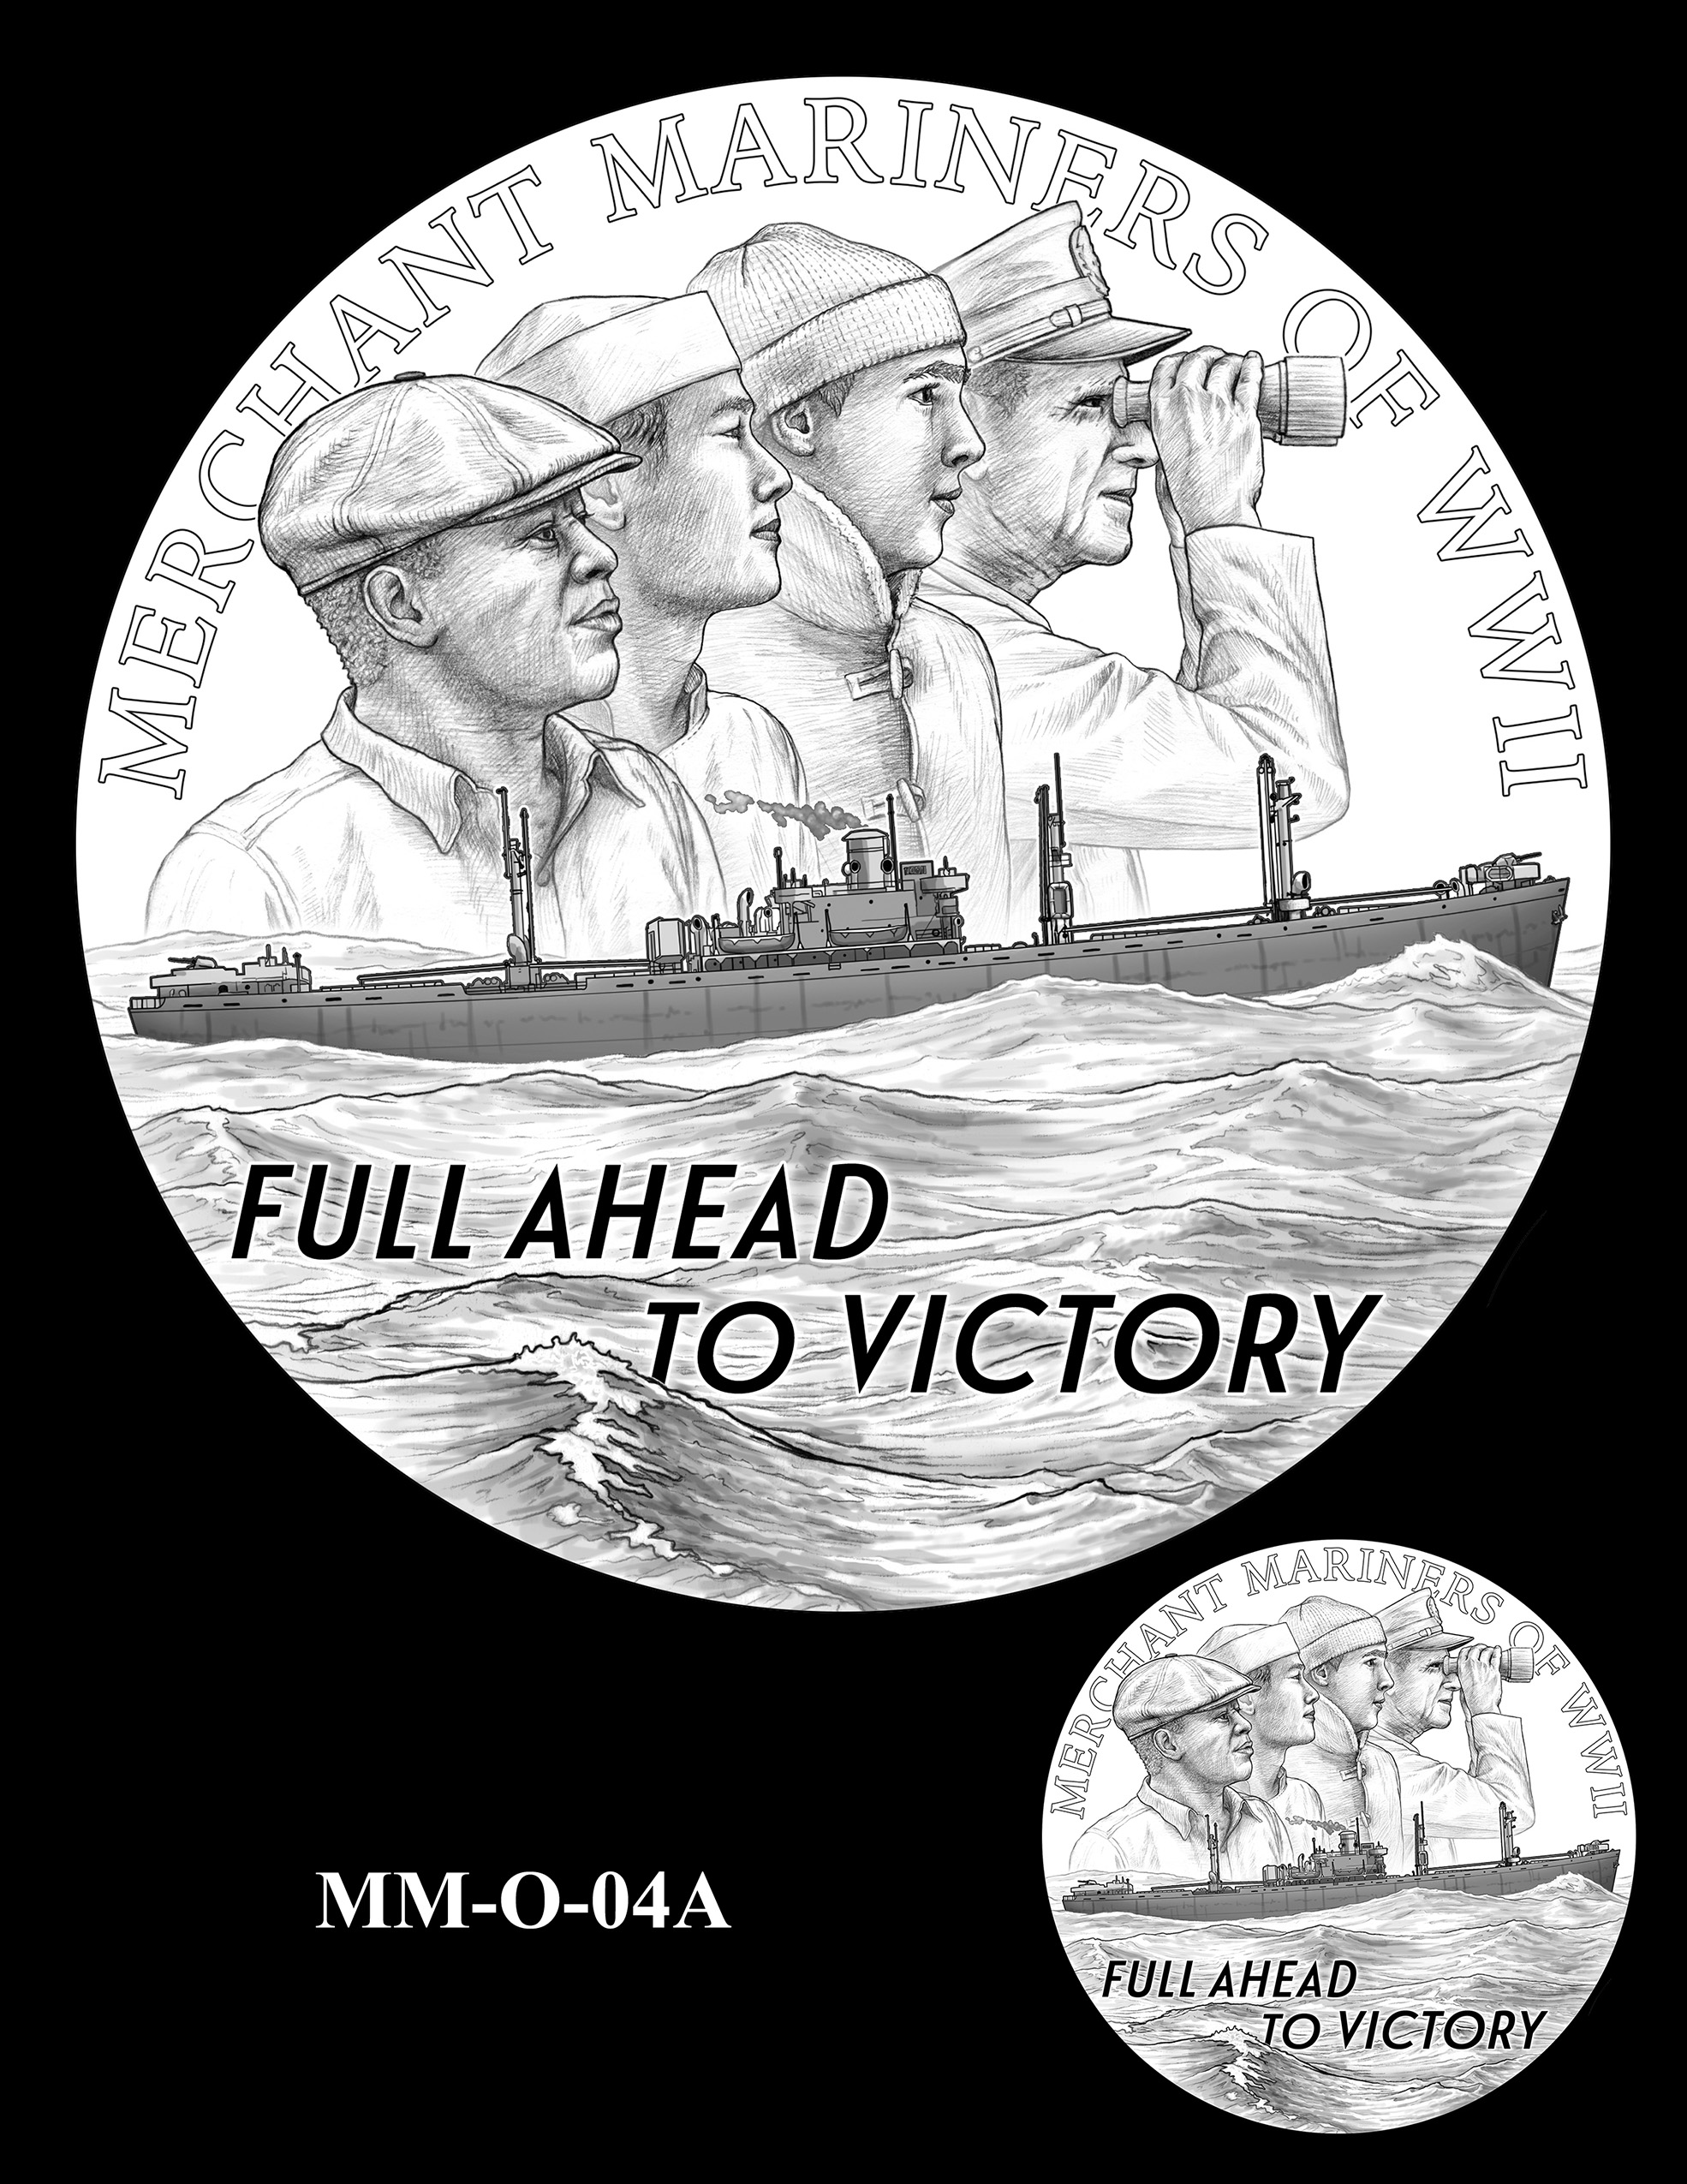 MM-O-04A -- Merchant Mariners of World War II Congressional Gold Medal